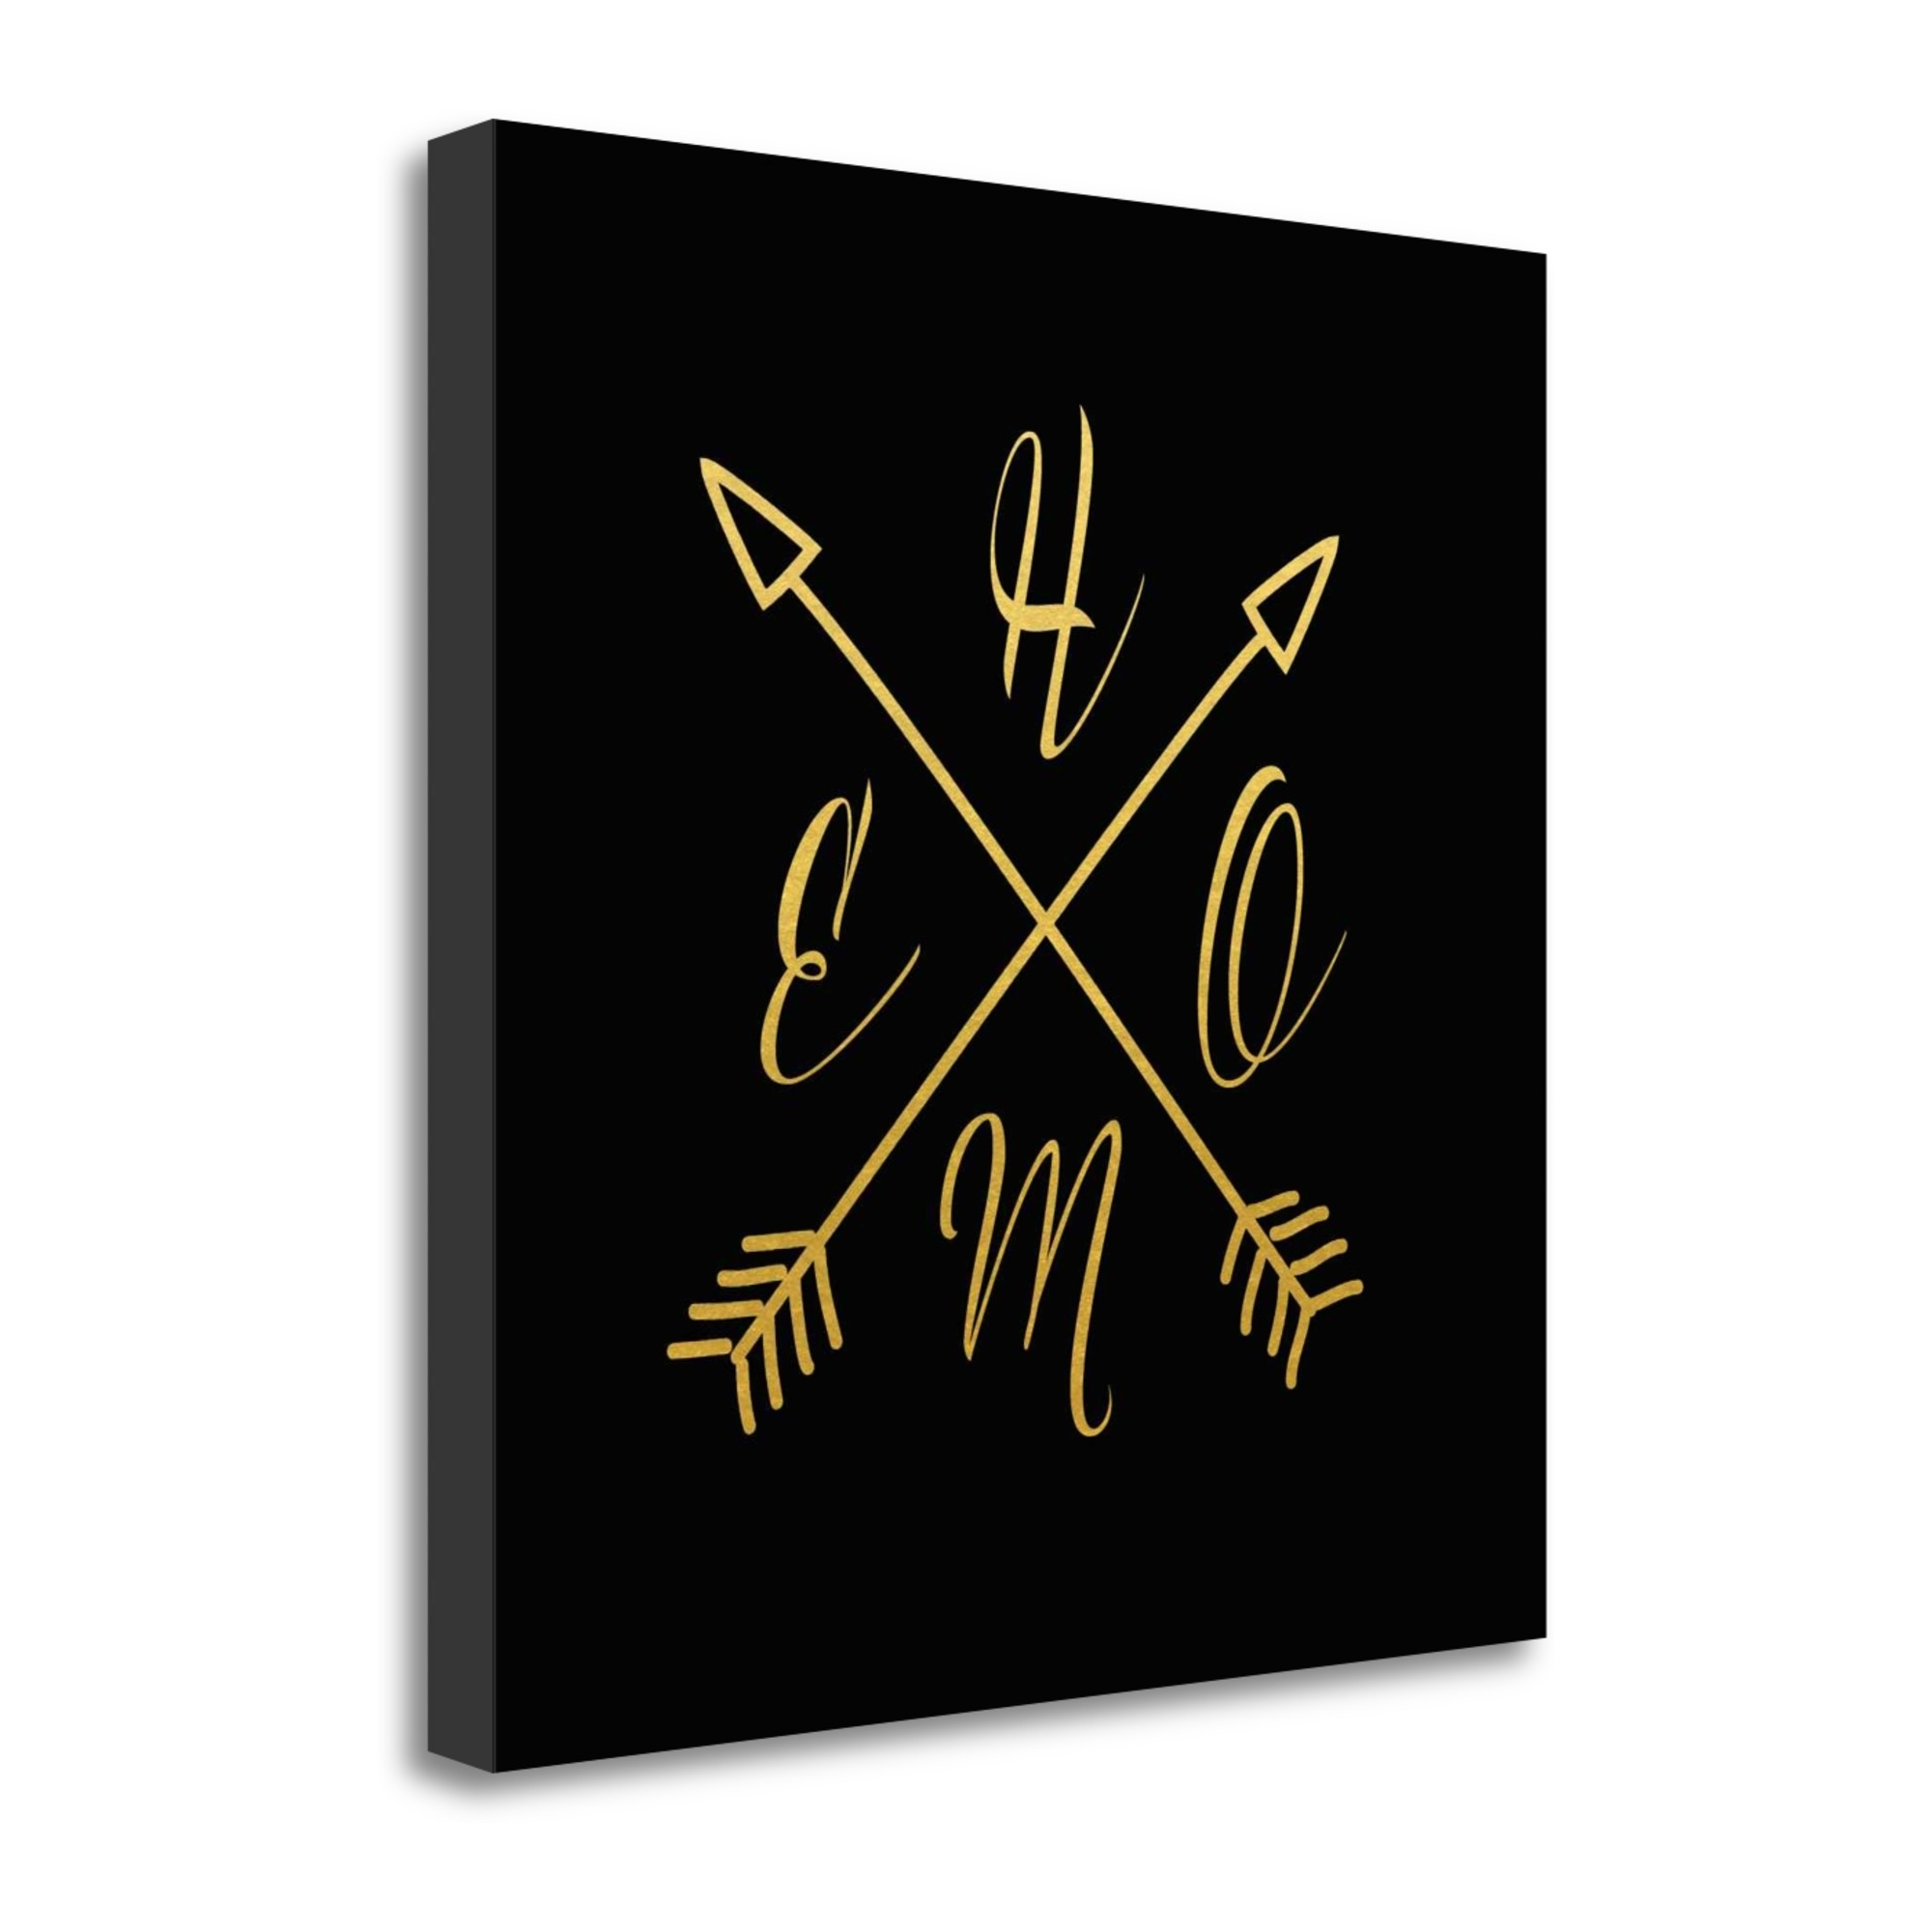 "Home Arrows By Tara Moss, 23"" x 23\"" Fine Art Giclee Print on Gallery Wrap Canvas, Ready to Hang"